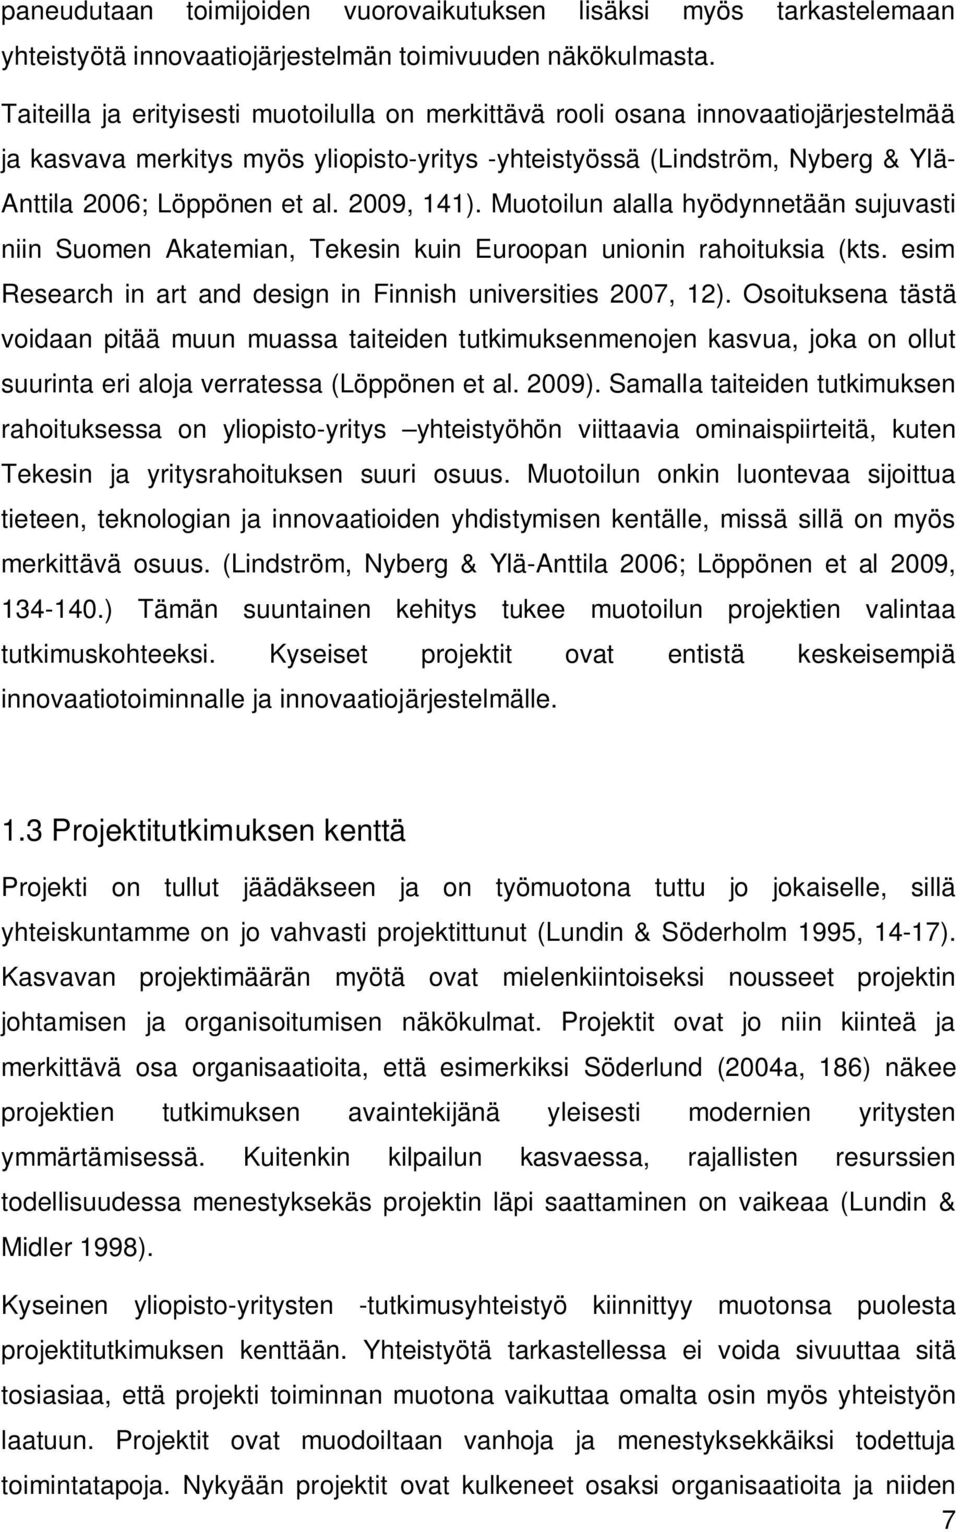 2009, 141). Muotoilun alalla hyödynnetään sujuvasti niin Suomen Akatemian, Tekesin kuin Euroopan unionin rahoituksia (kts. esim Research in art and design in Finnish universities 2007, 12).